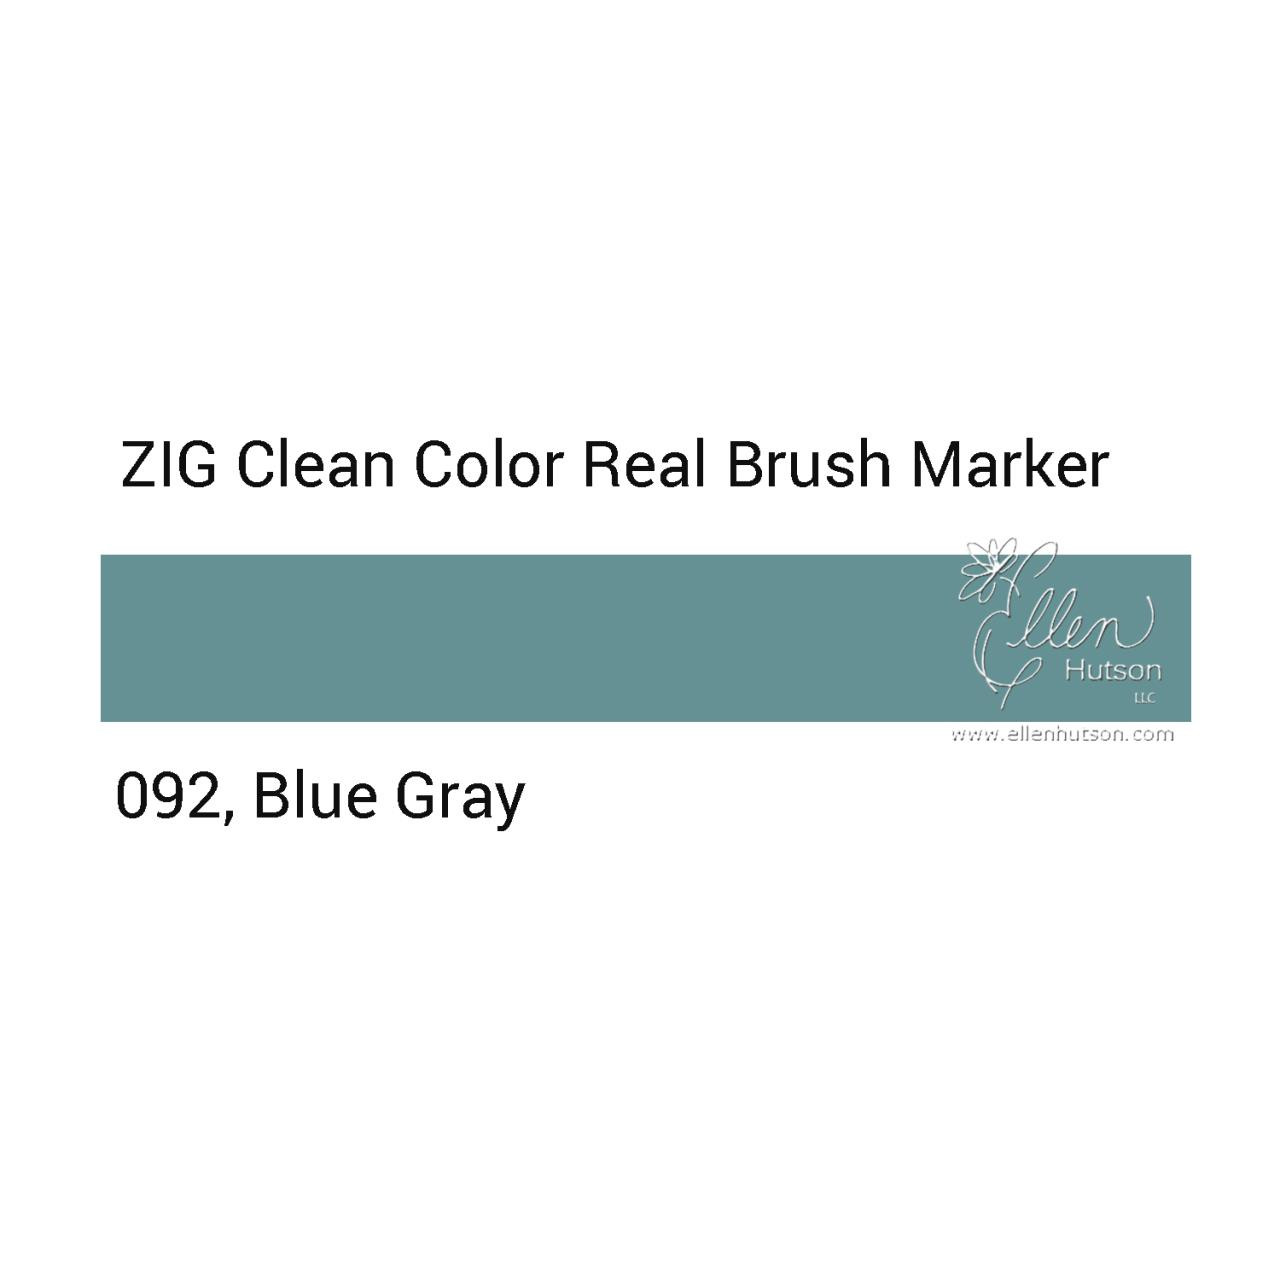 092 - Blue Gray, ZIG Clean Color Real Brush Marker -